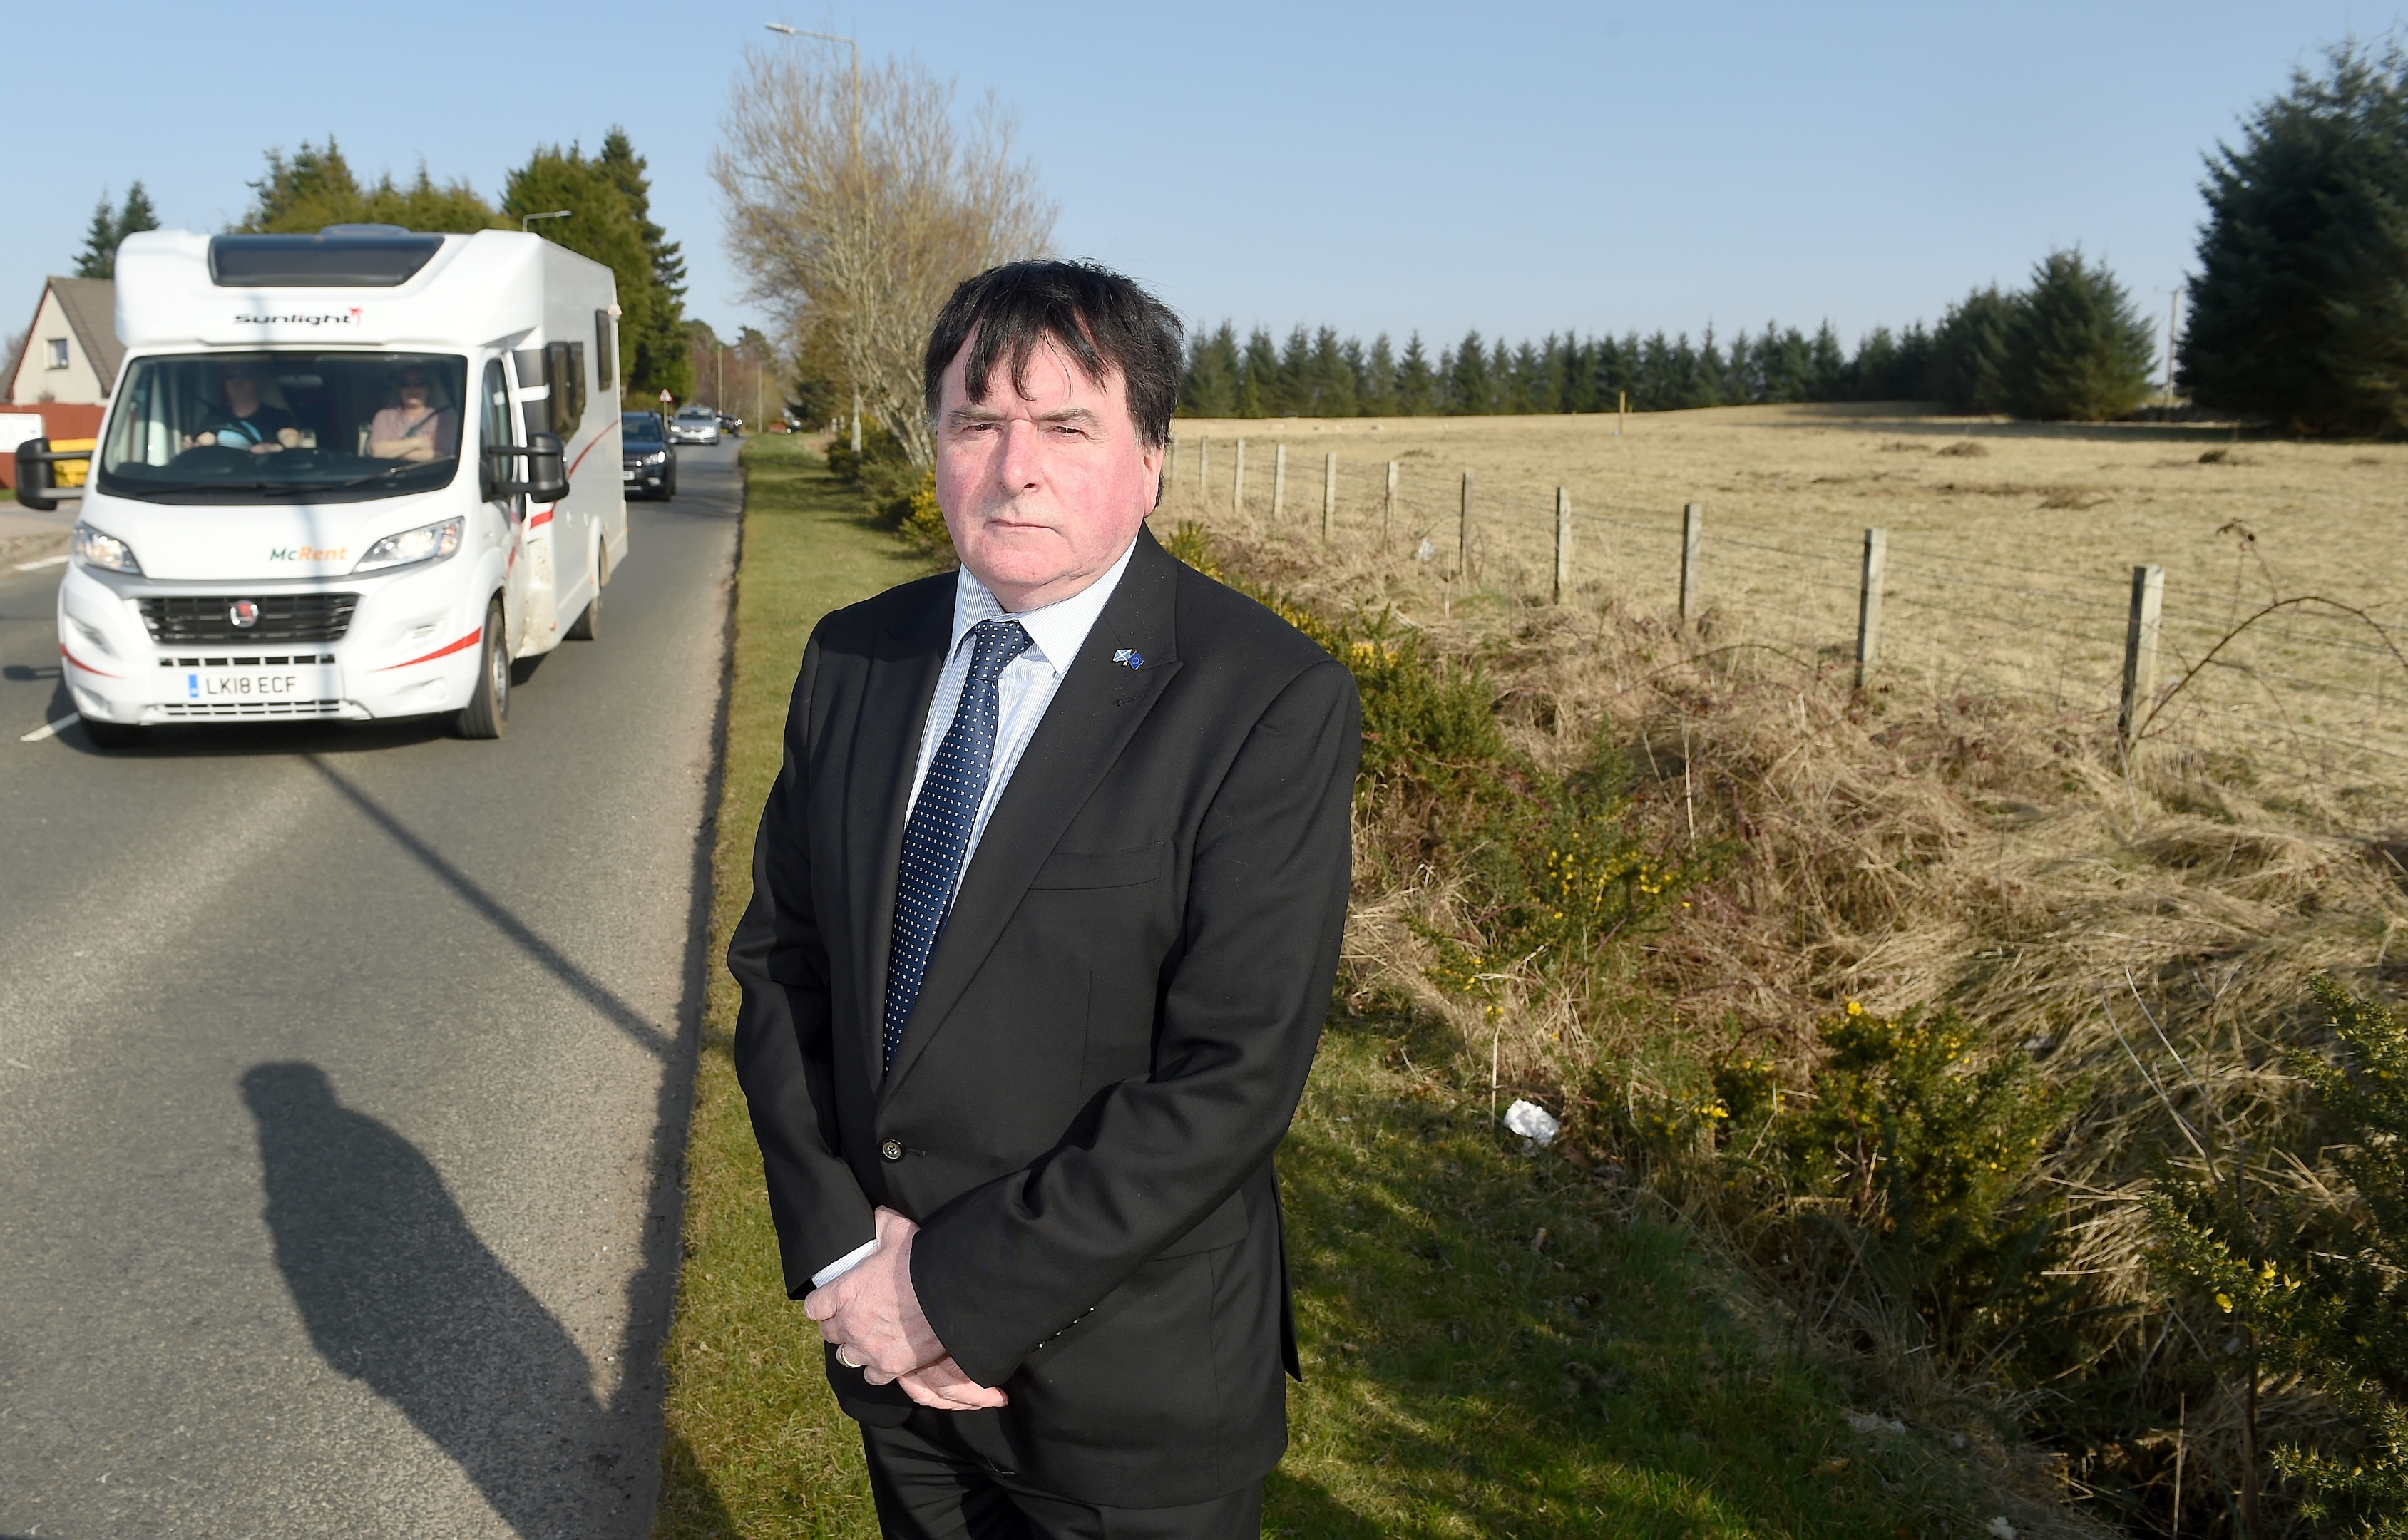 Inverness Councillor Ken Gowans at the site of the contentious planning application